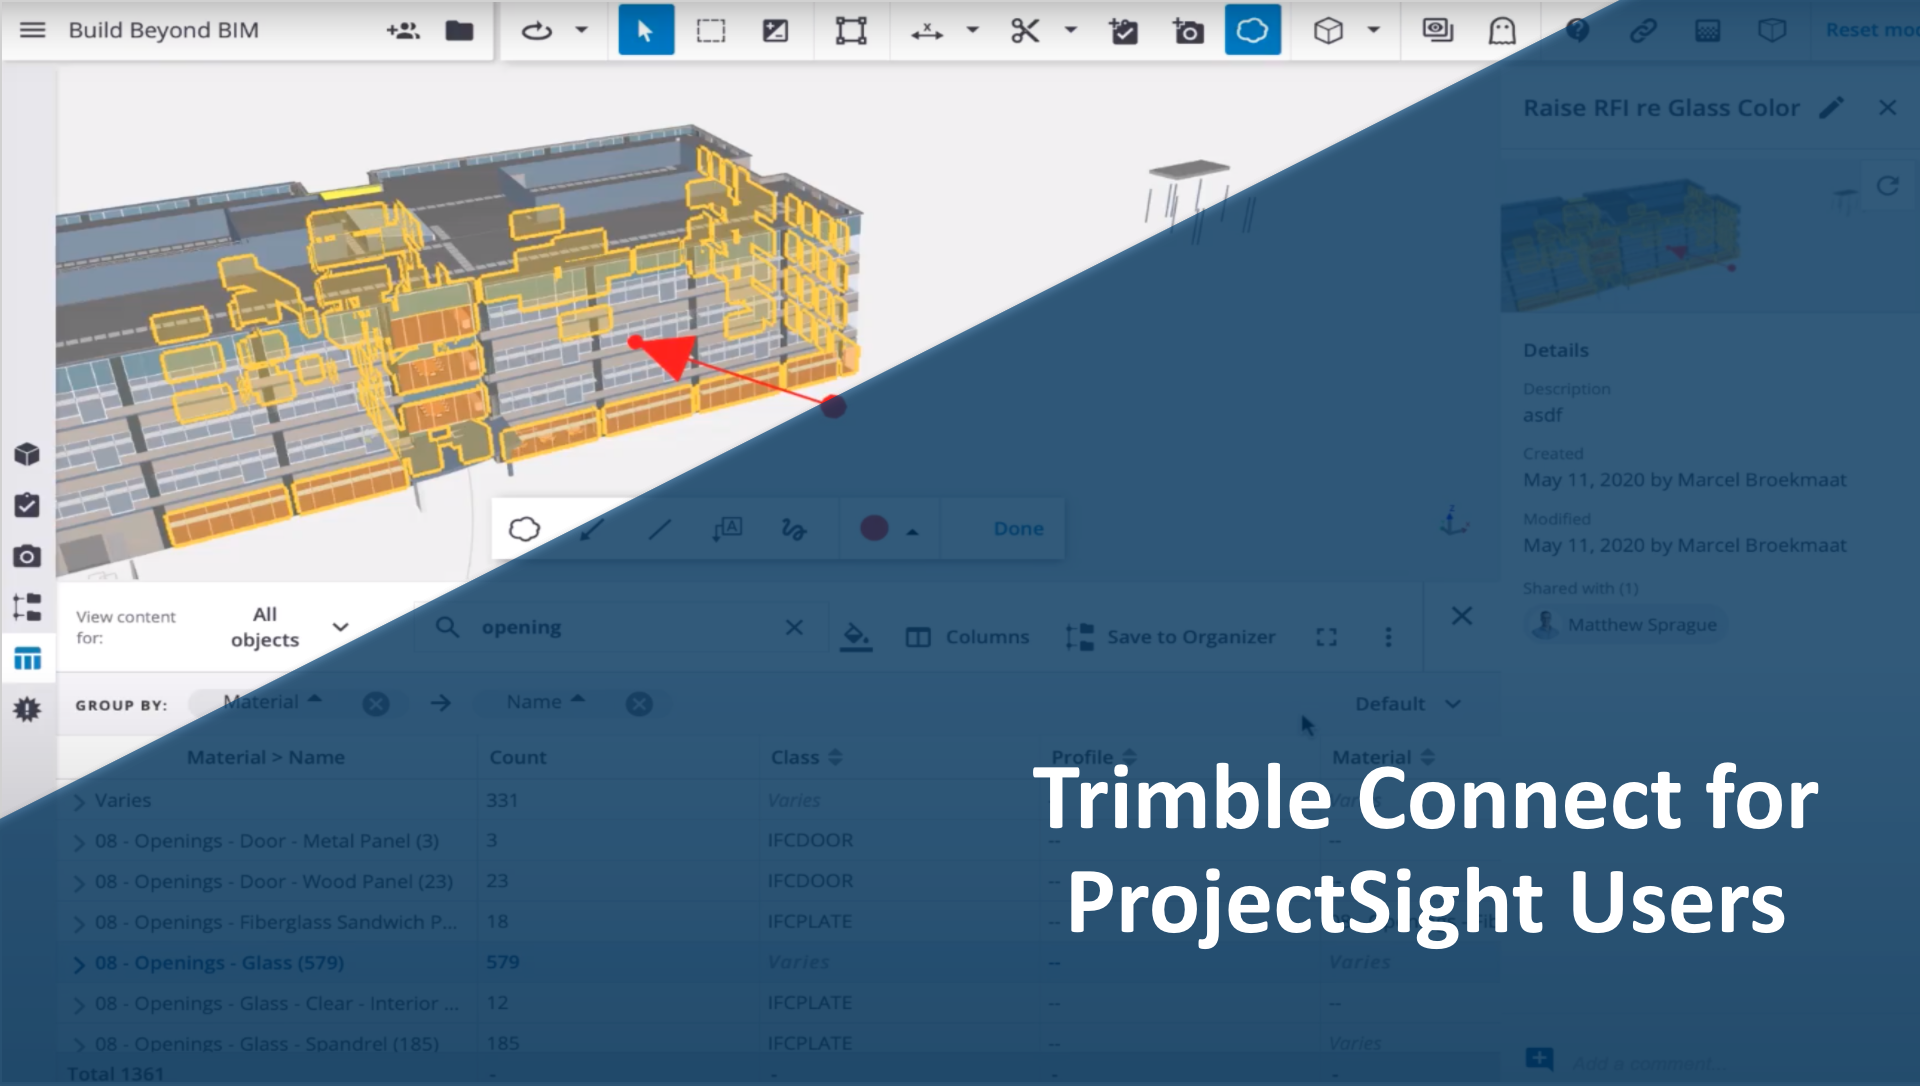 Trimble_Connect_for_ProjectSight_Users_Thumb